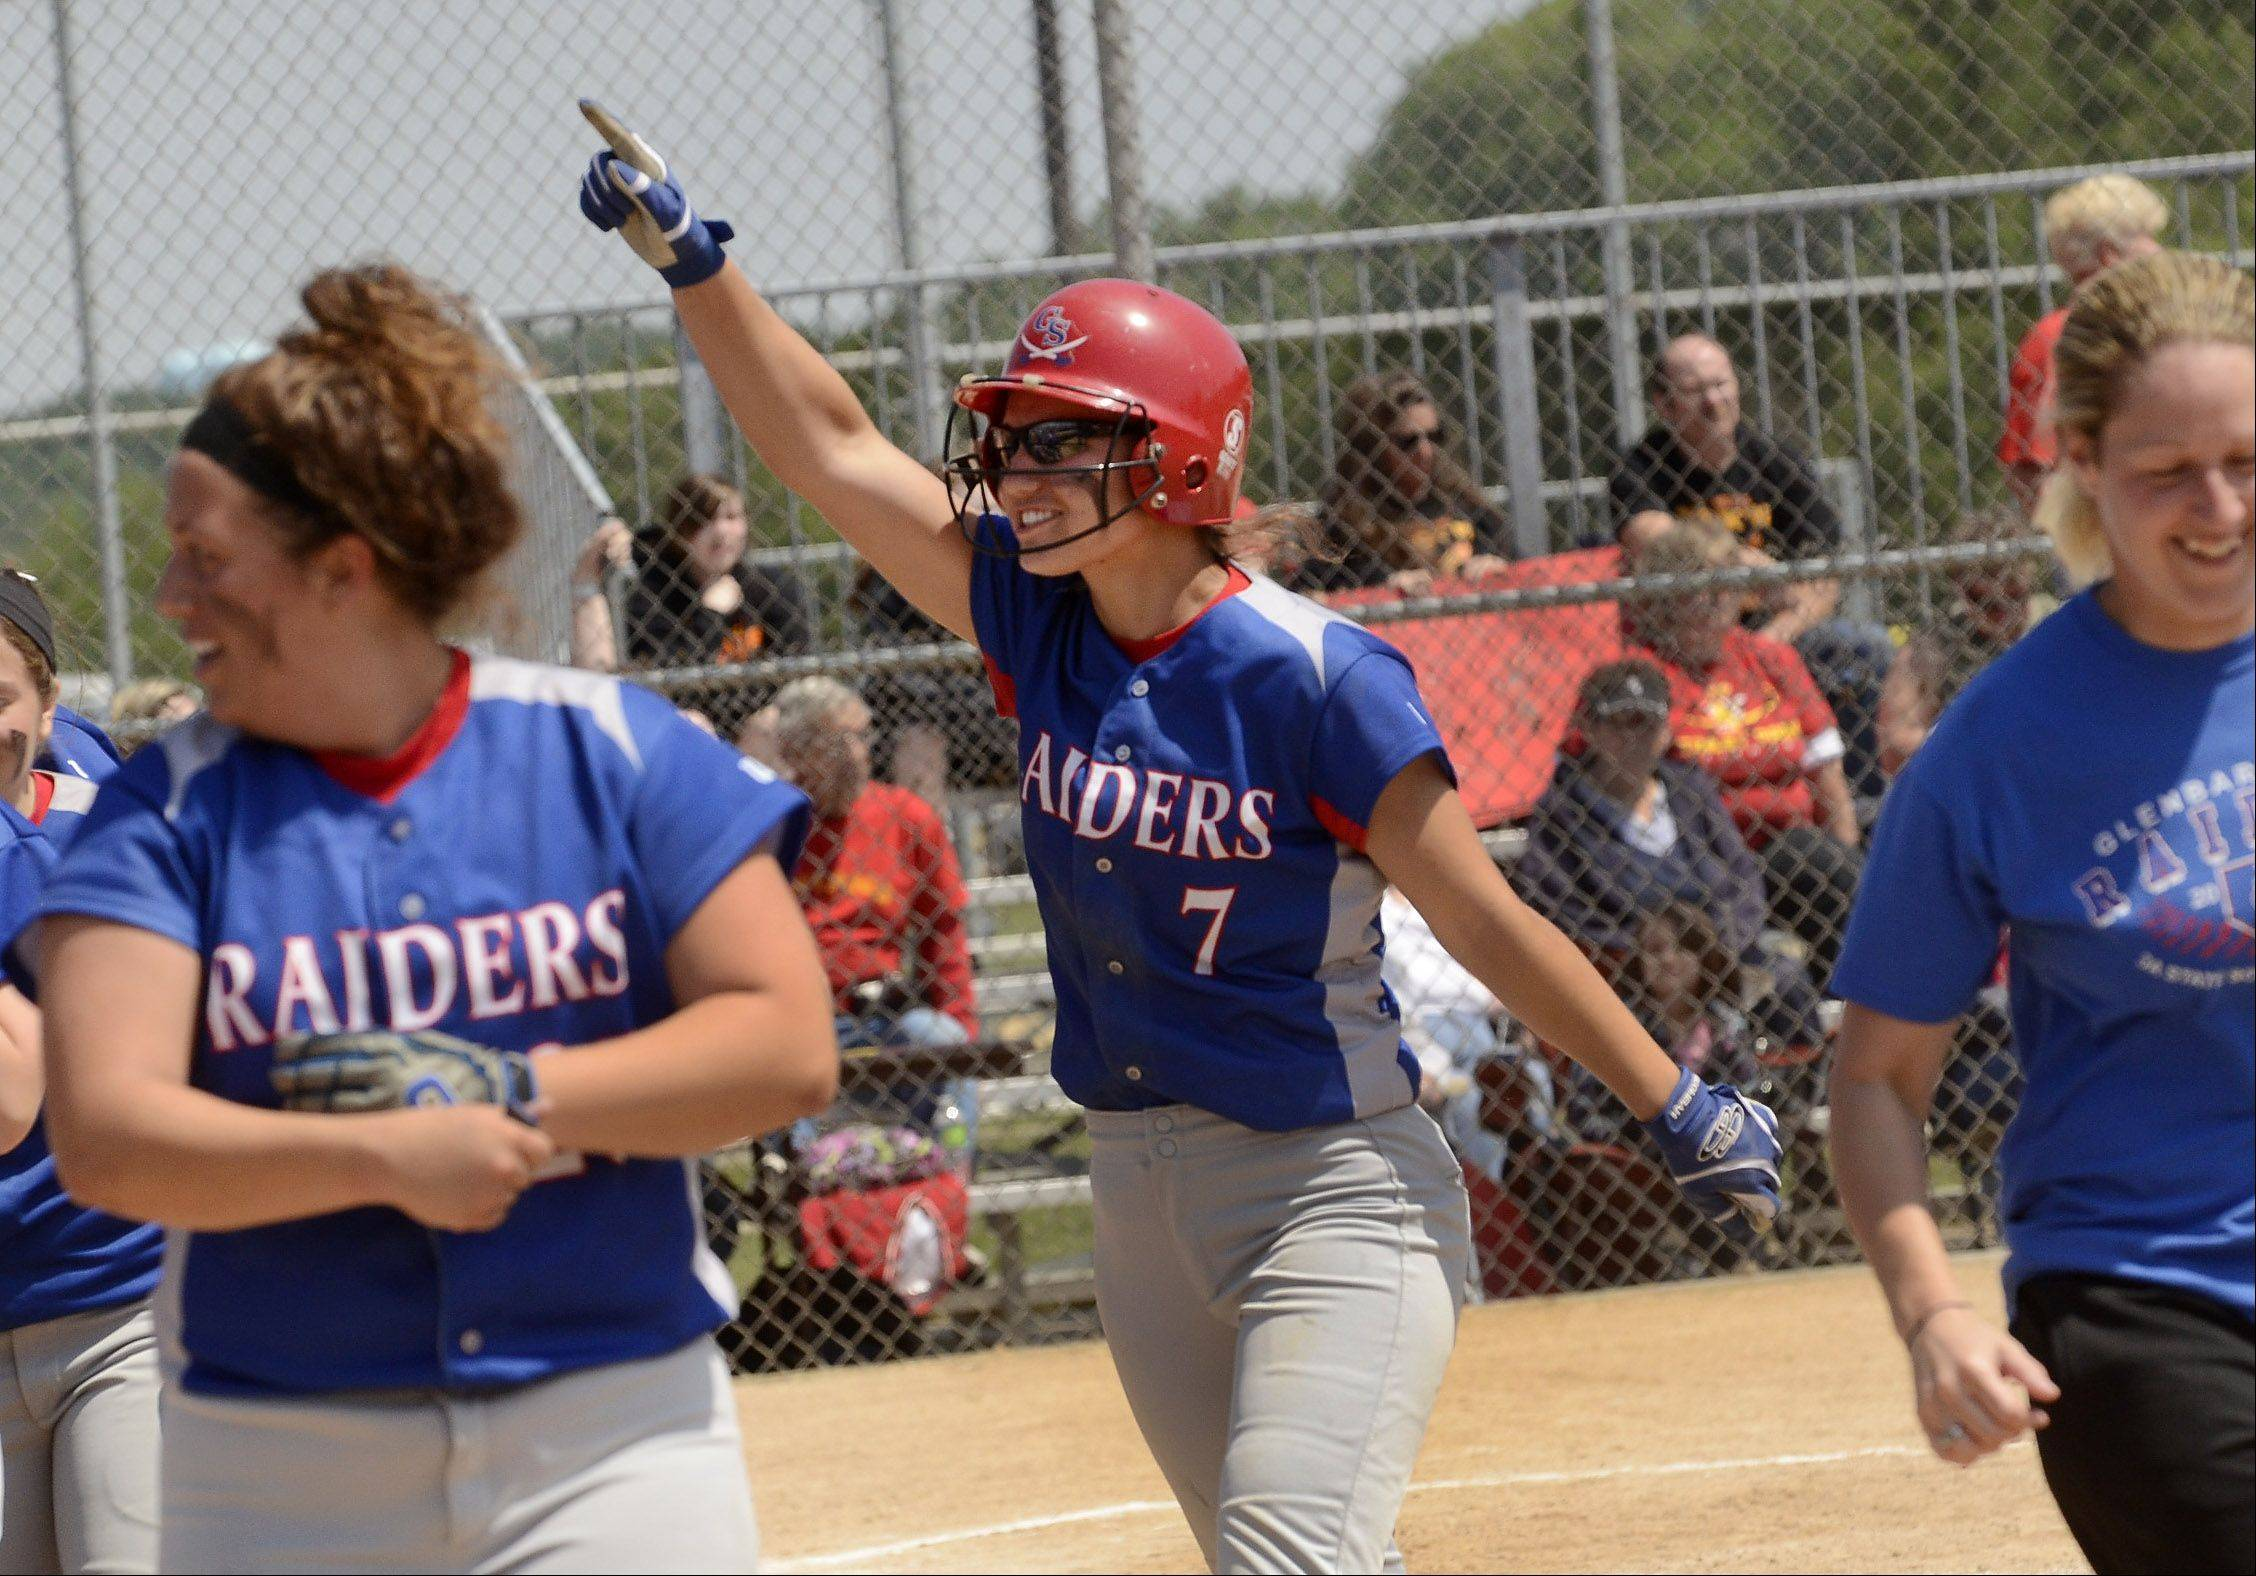 Glenbard South's Hannah Taylor points to the crowd while celebrating with her teammates after hitting a two-run home run in the 4th inning of the Class 3A state semifinal between Glenbard South and Tinley Park.